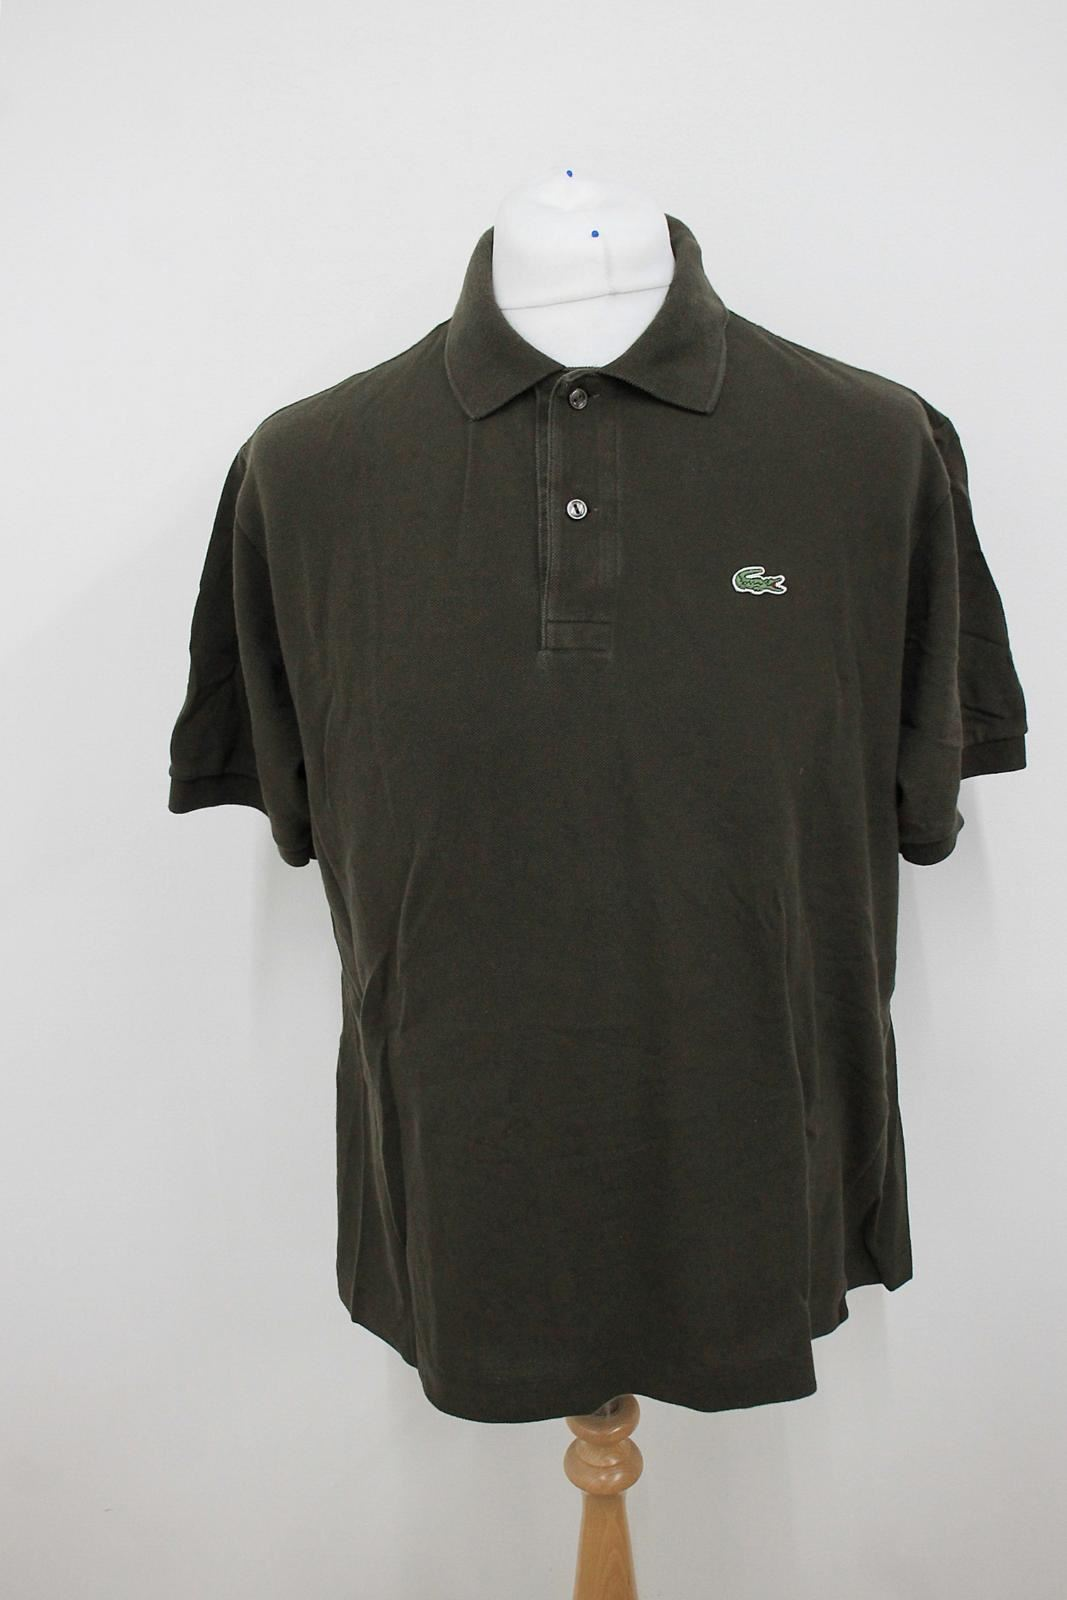 LACOSTE-Men-039-s-Dark-Green-Cotton-Short-Sleeved-Collared-Polo-Shirt-Size-6-XL